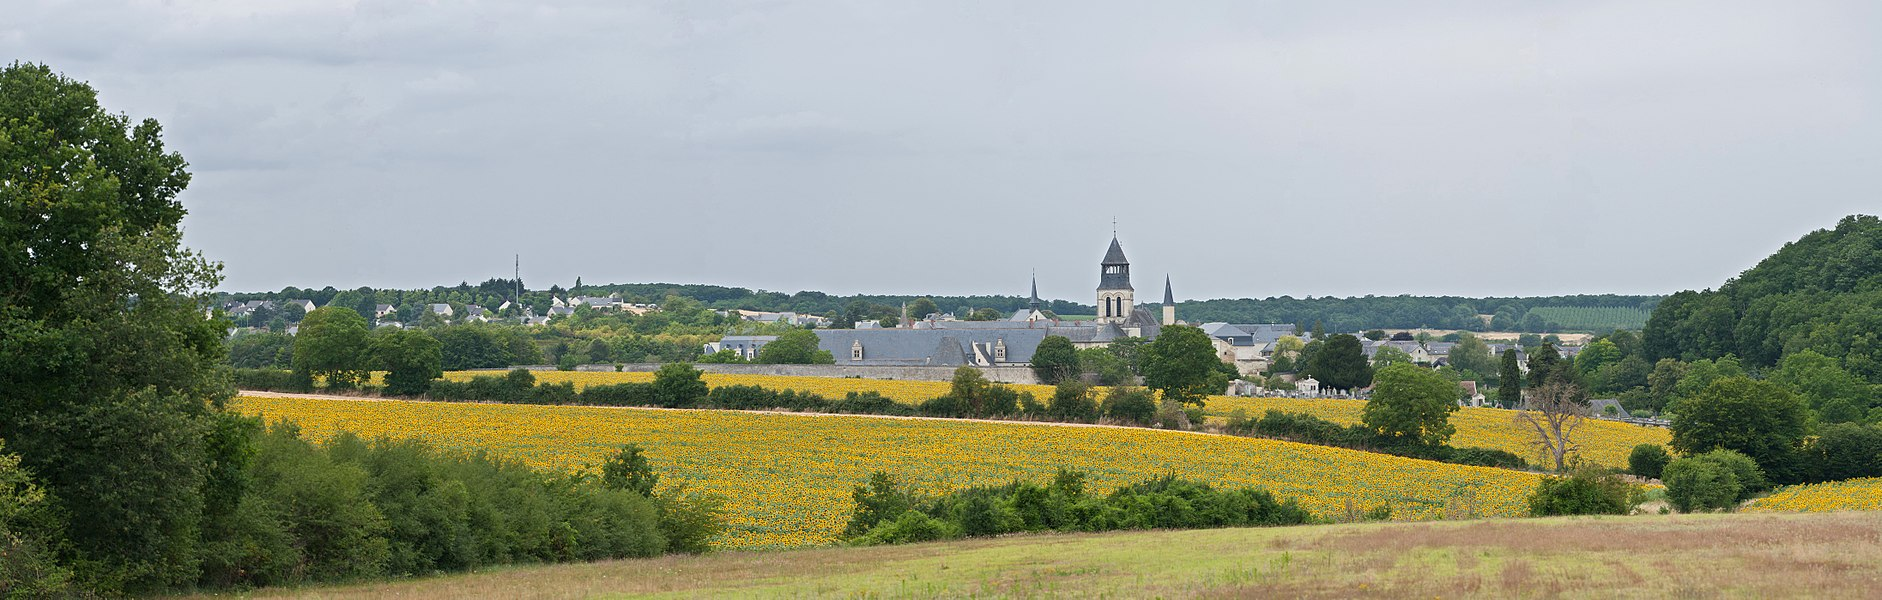 A 6 segment panorama of the village of Fontevraud-l'Abbaye as viewed from the east in the Loire Valley of France.